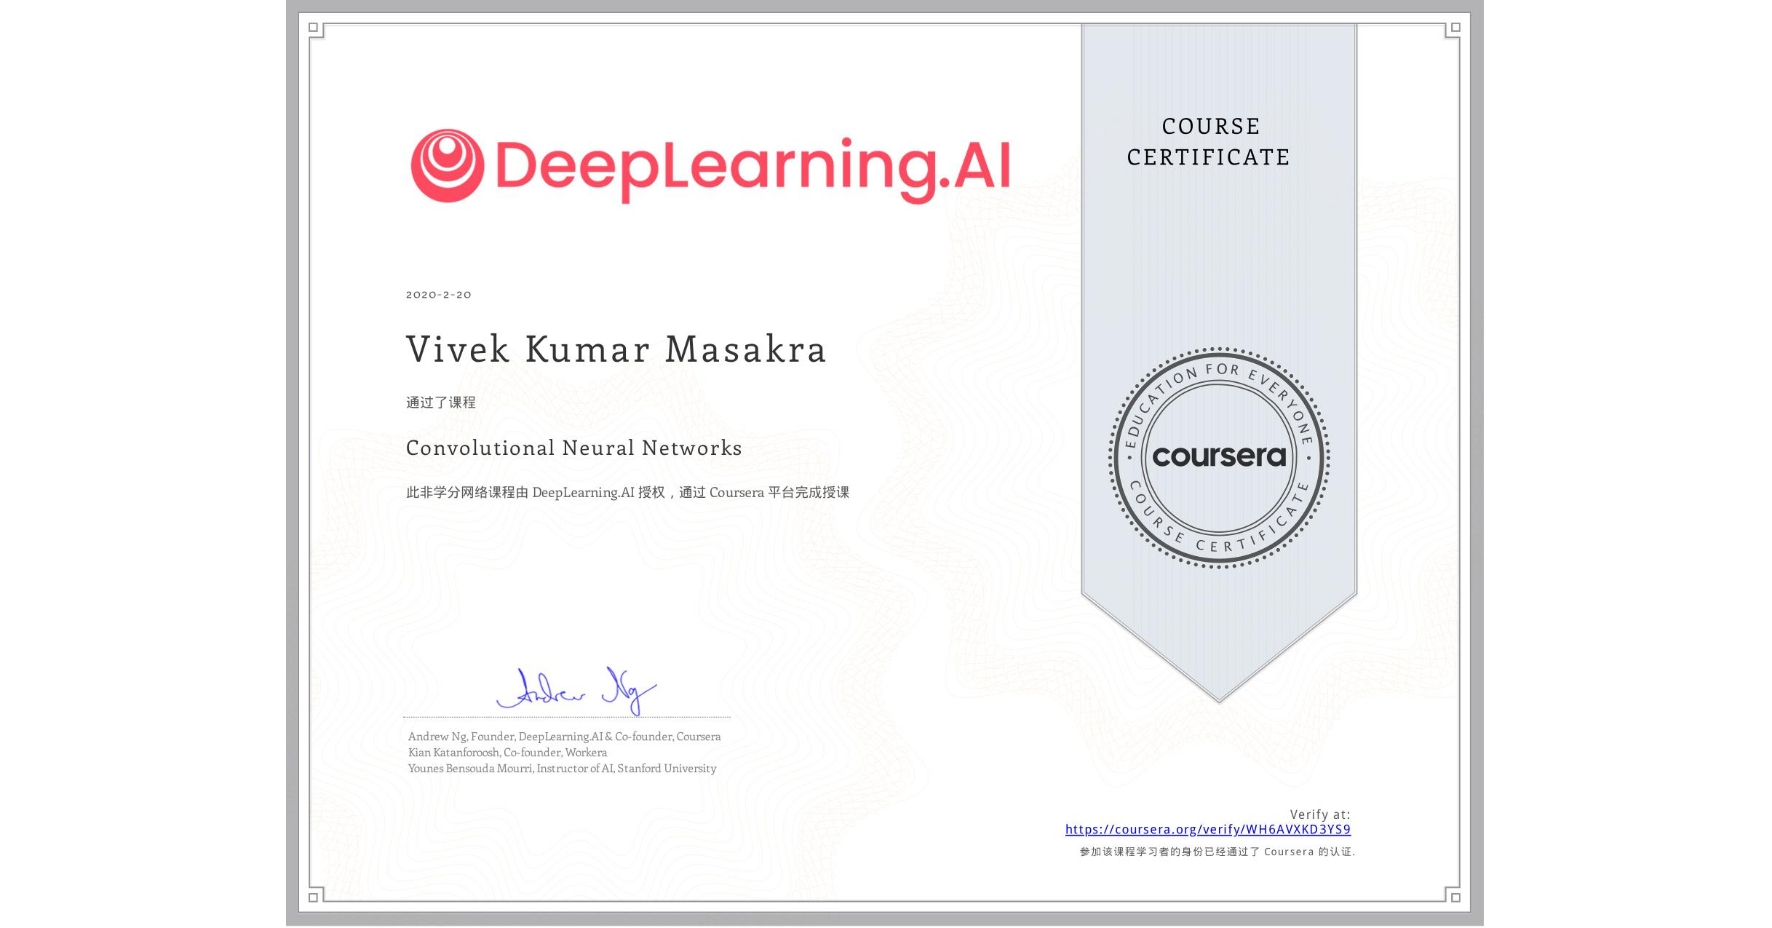 View certificate for Vivek Kumar  Masakra, Convolutional Neural Networks, an online non-credit course authorized by DeepLearning.AI and offered through Coursera